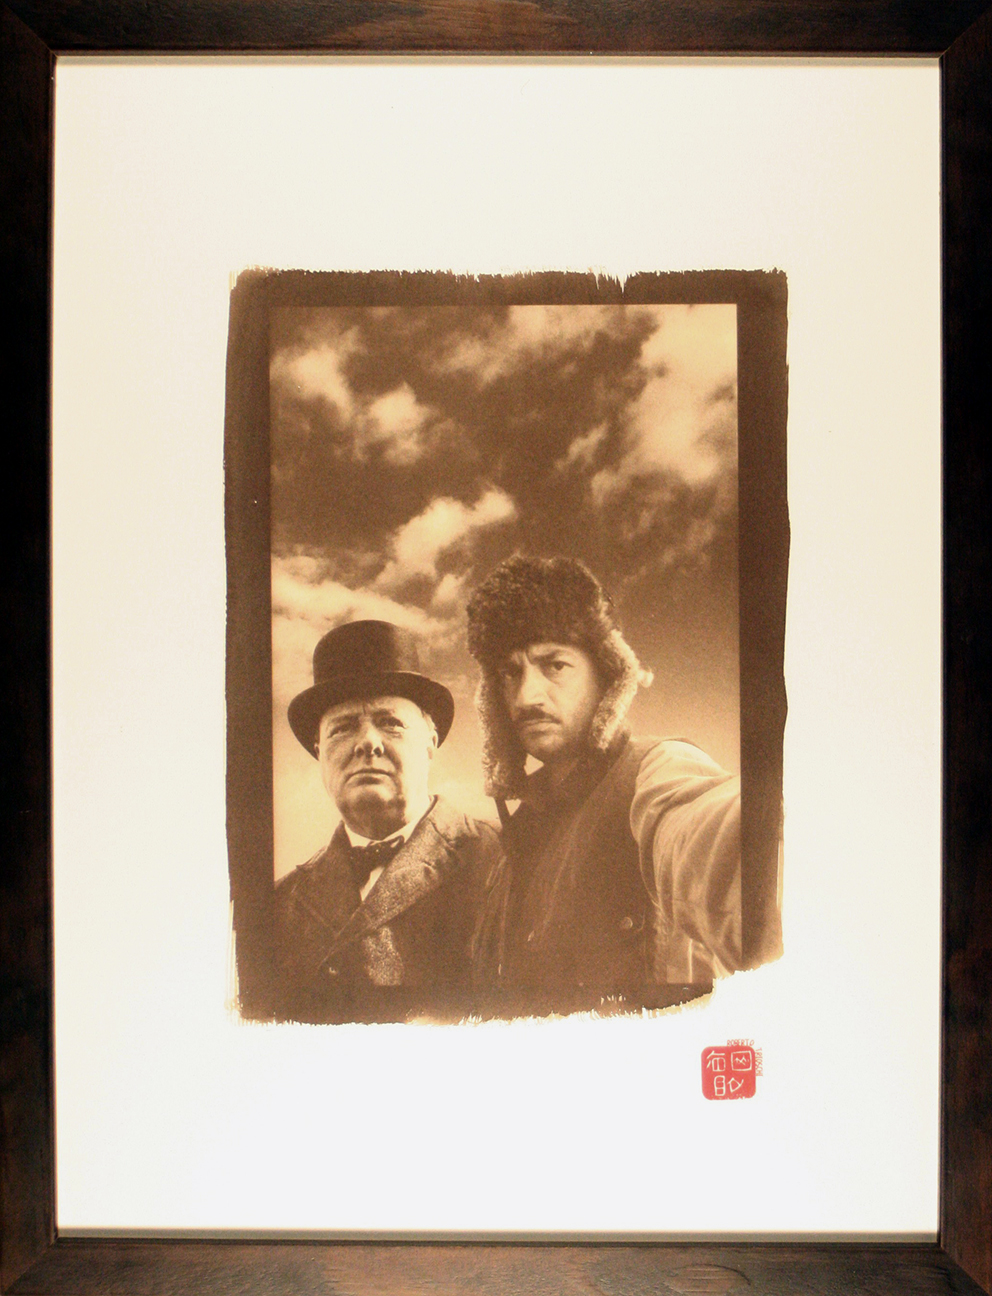 - MOI ET ...  W. C.Original 18x24cm photo-montage with Van Dyck process print, in 33x43cm glass protected wooden frame.300 €